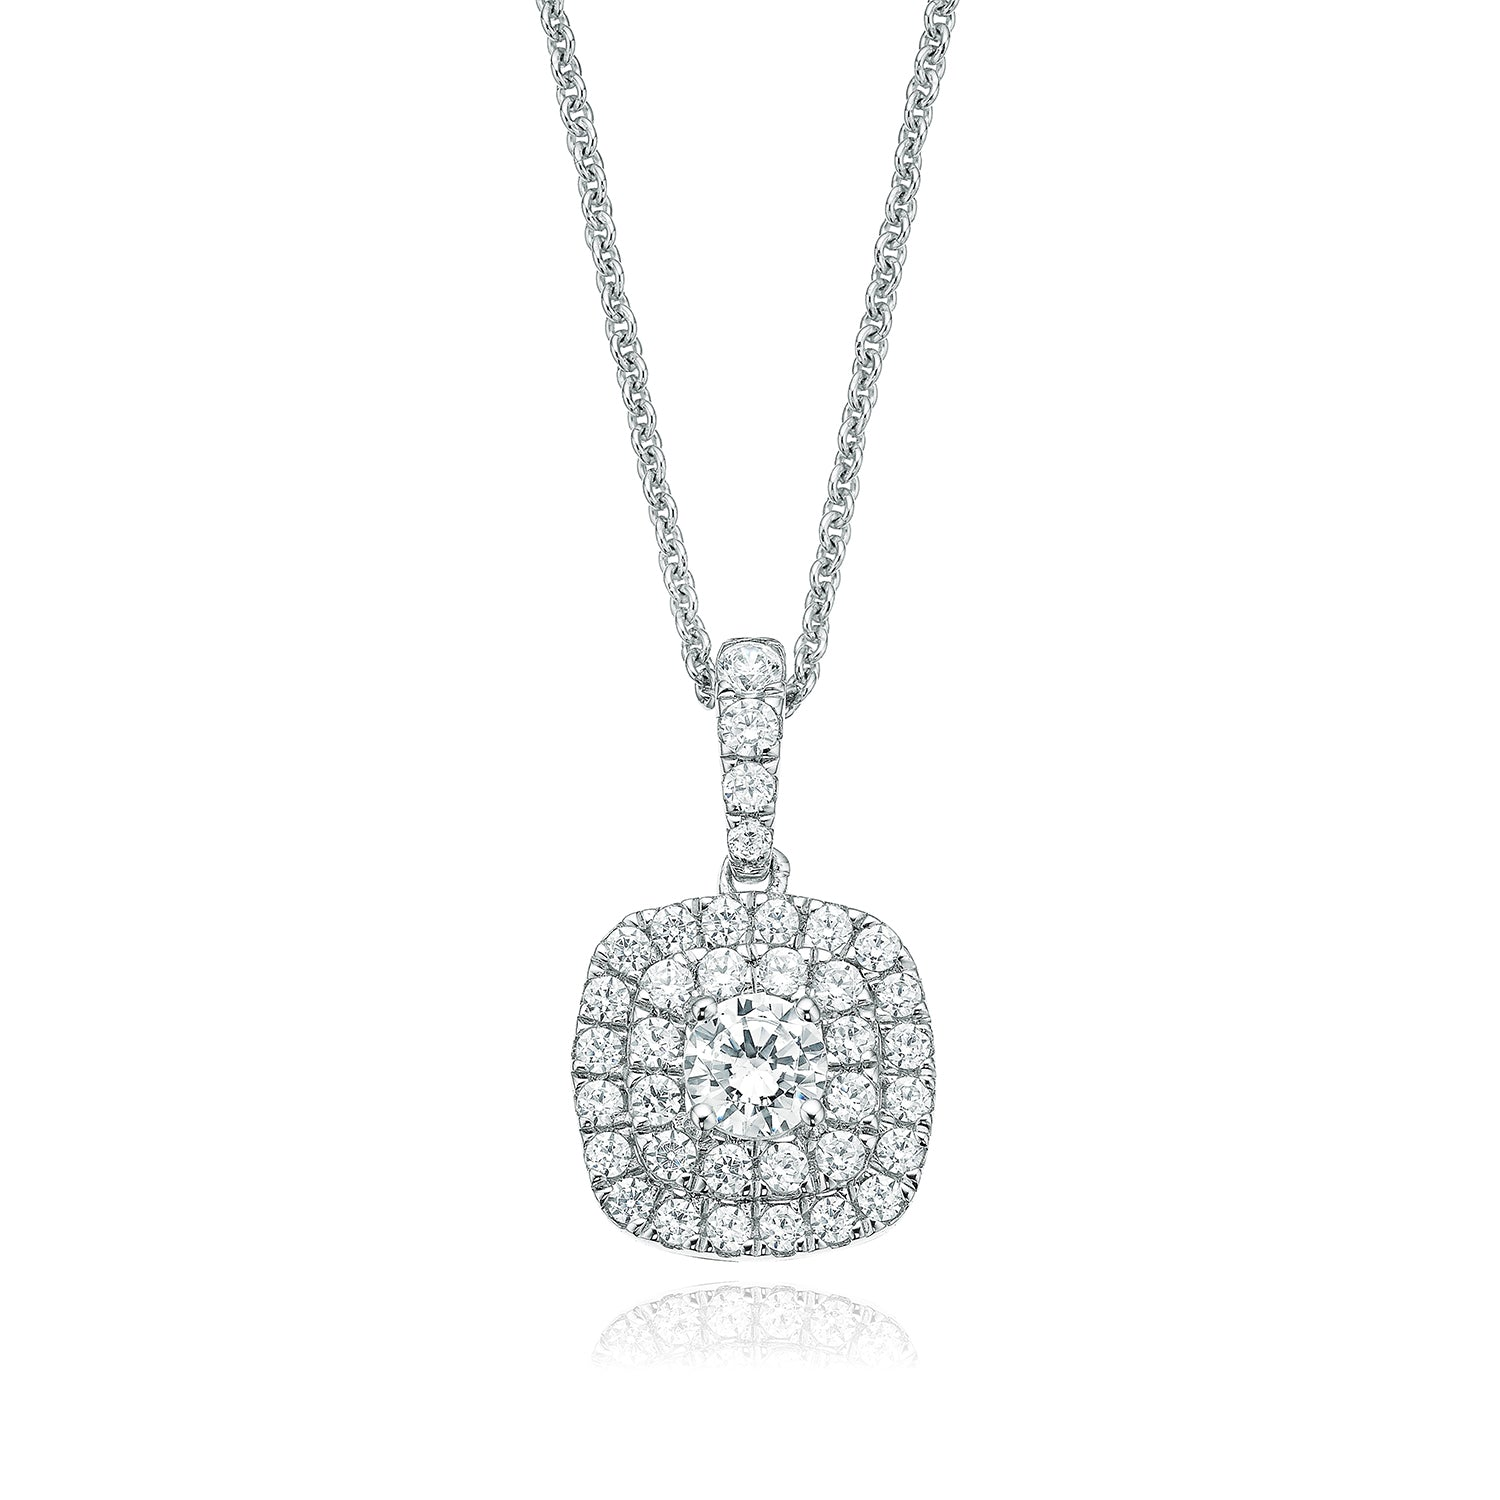 Rand 18ct White Gold Round Brilliant Cut with 0.65 CARAT tw of Diamond Pendant